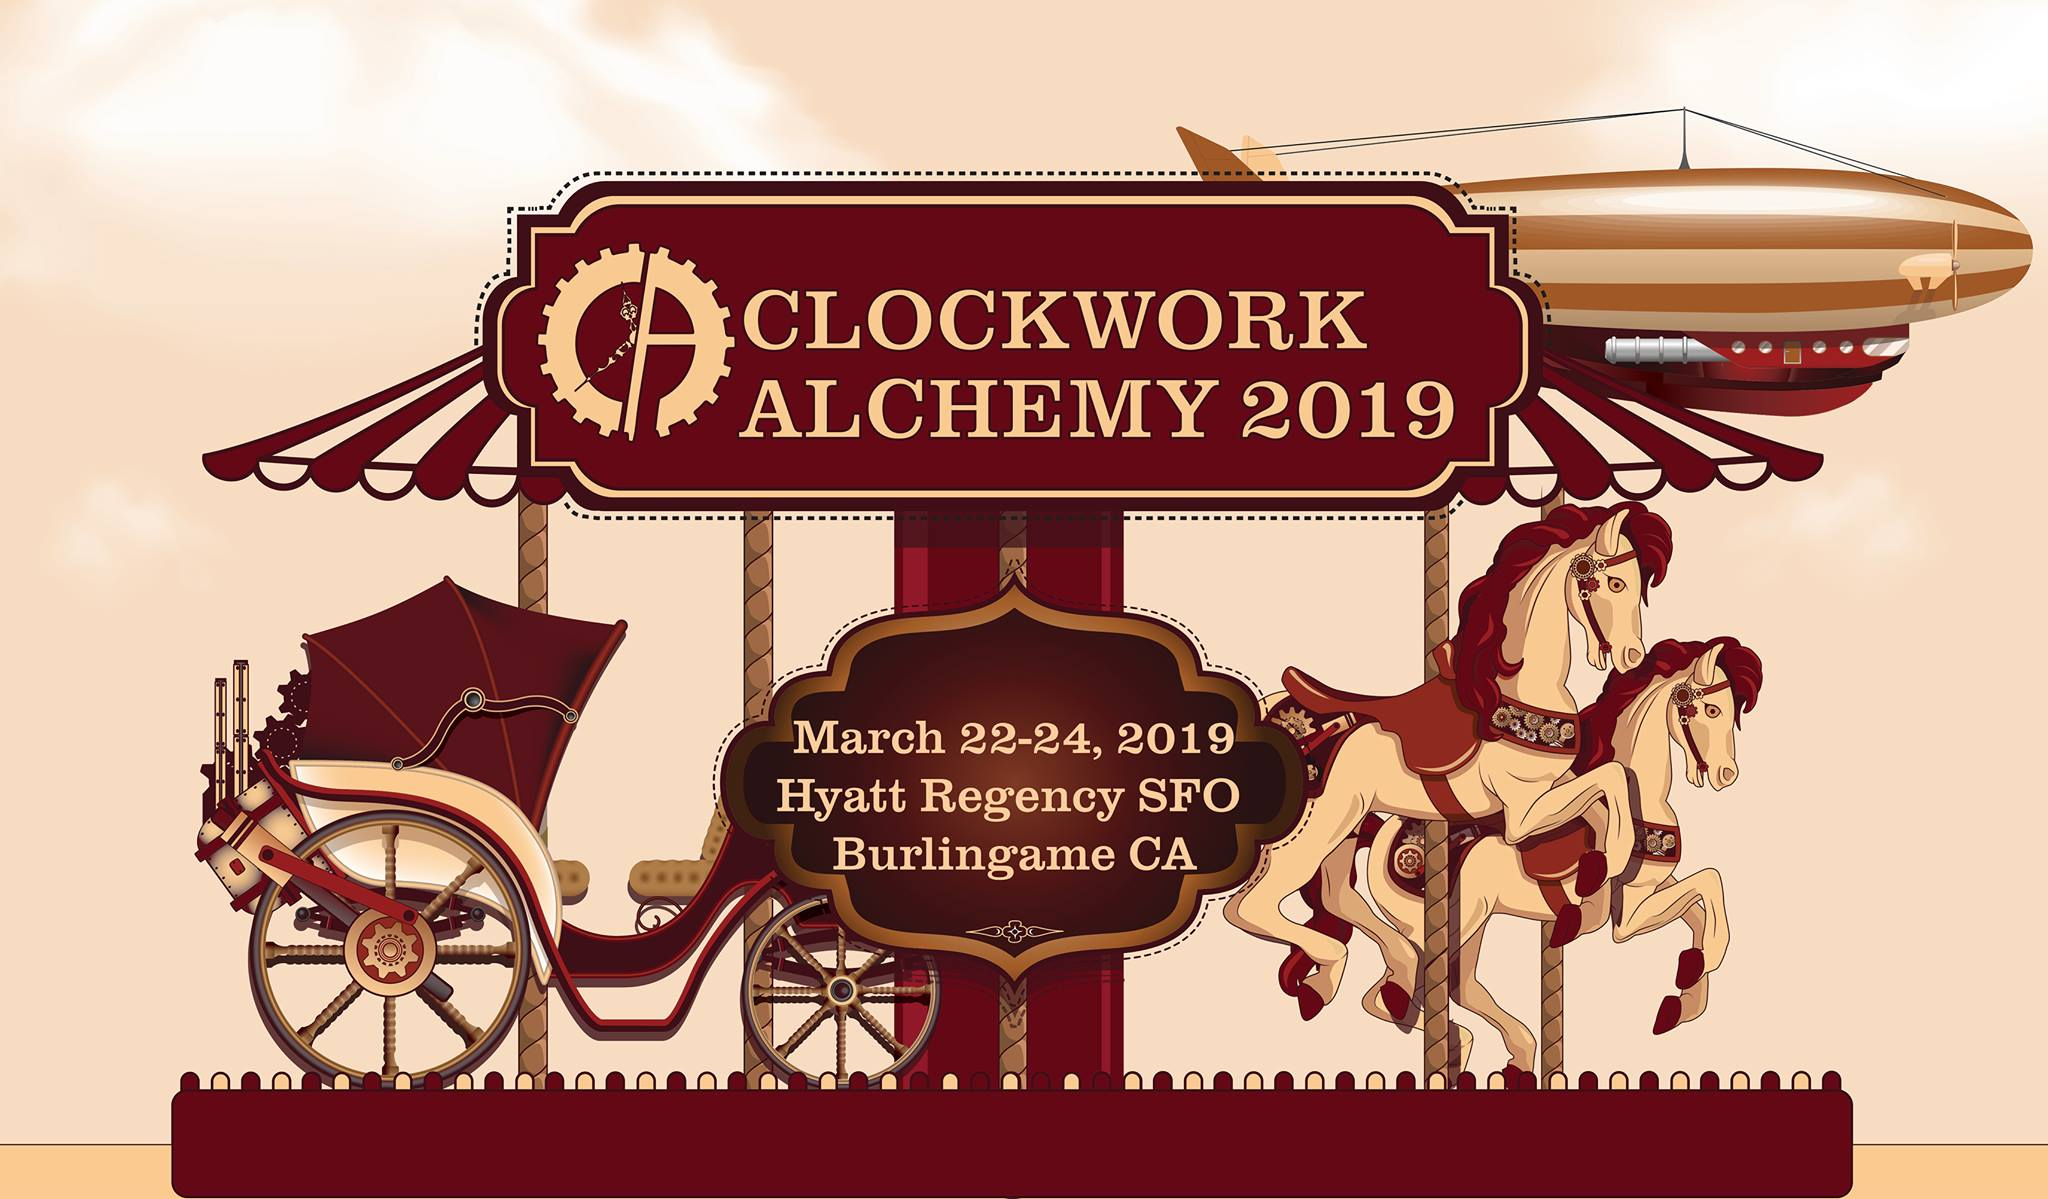 steampunk clockwork alchemy 2019 convention